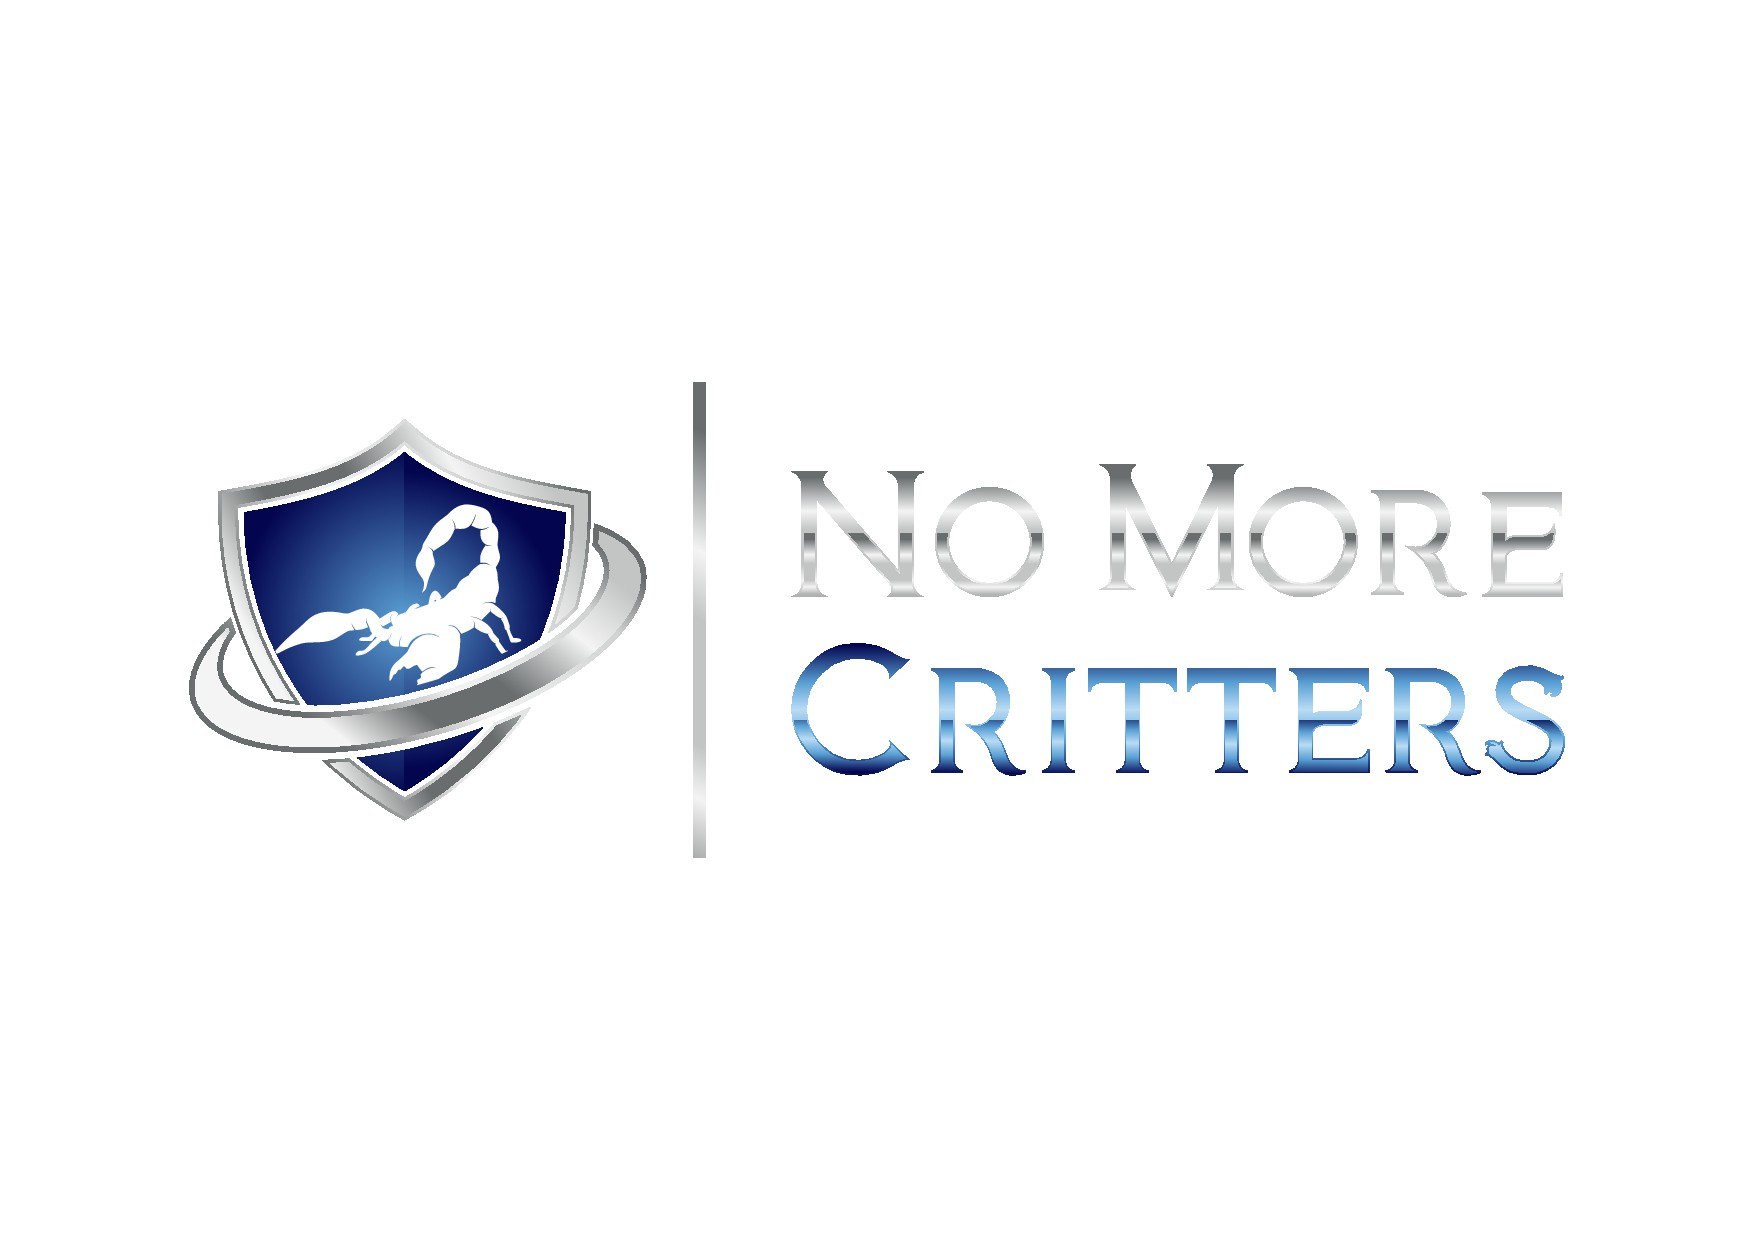 I need a logo for my home sealing business. I would like my business as protecting people. Make most royal blue and gray